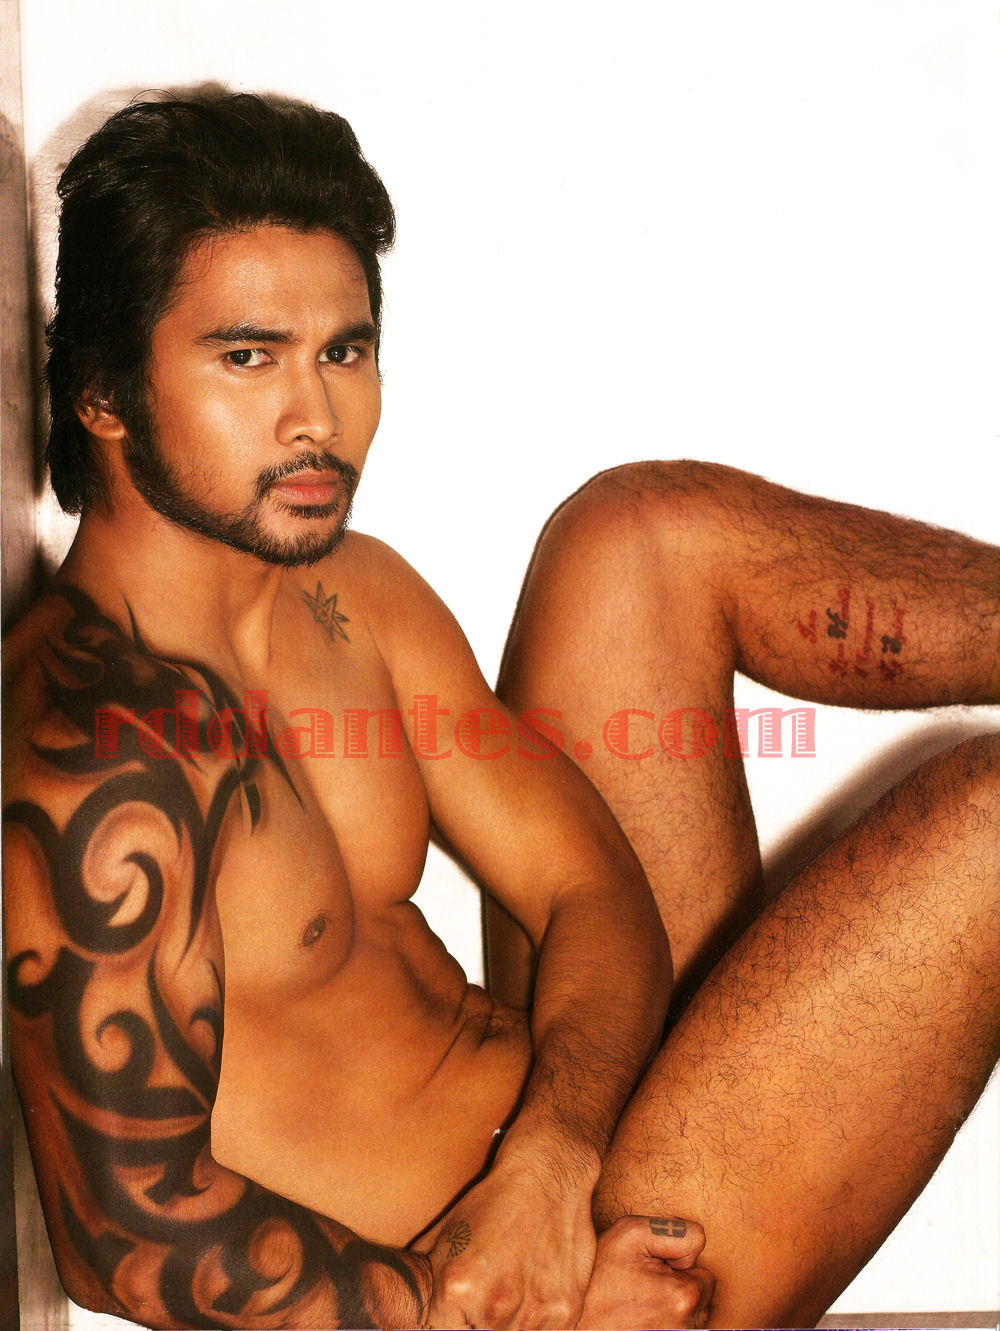 from Craig gorgeous naked pinoy men